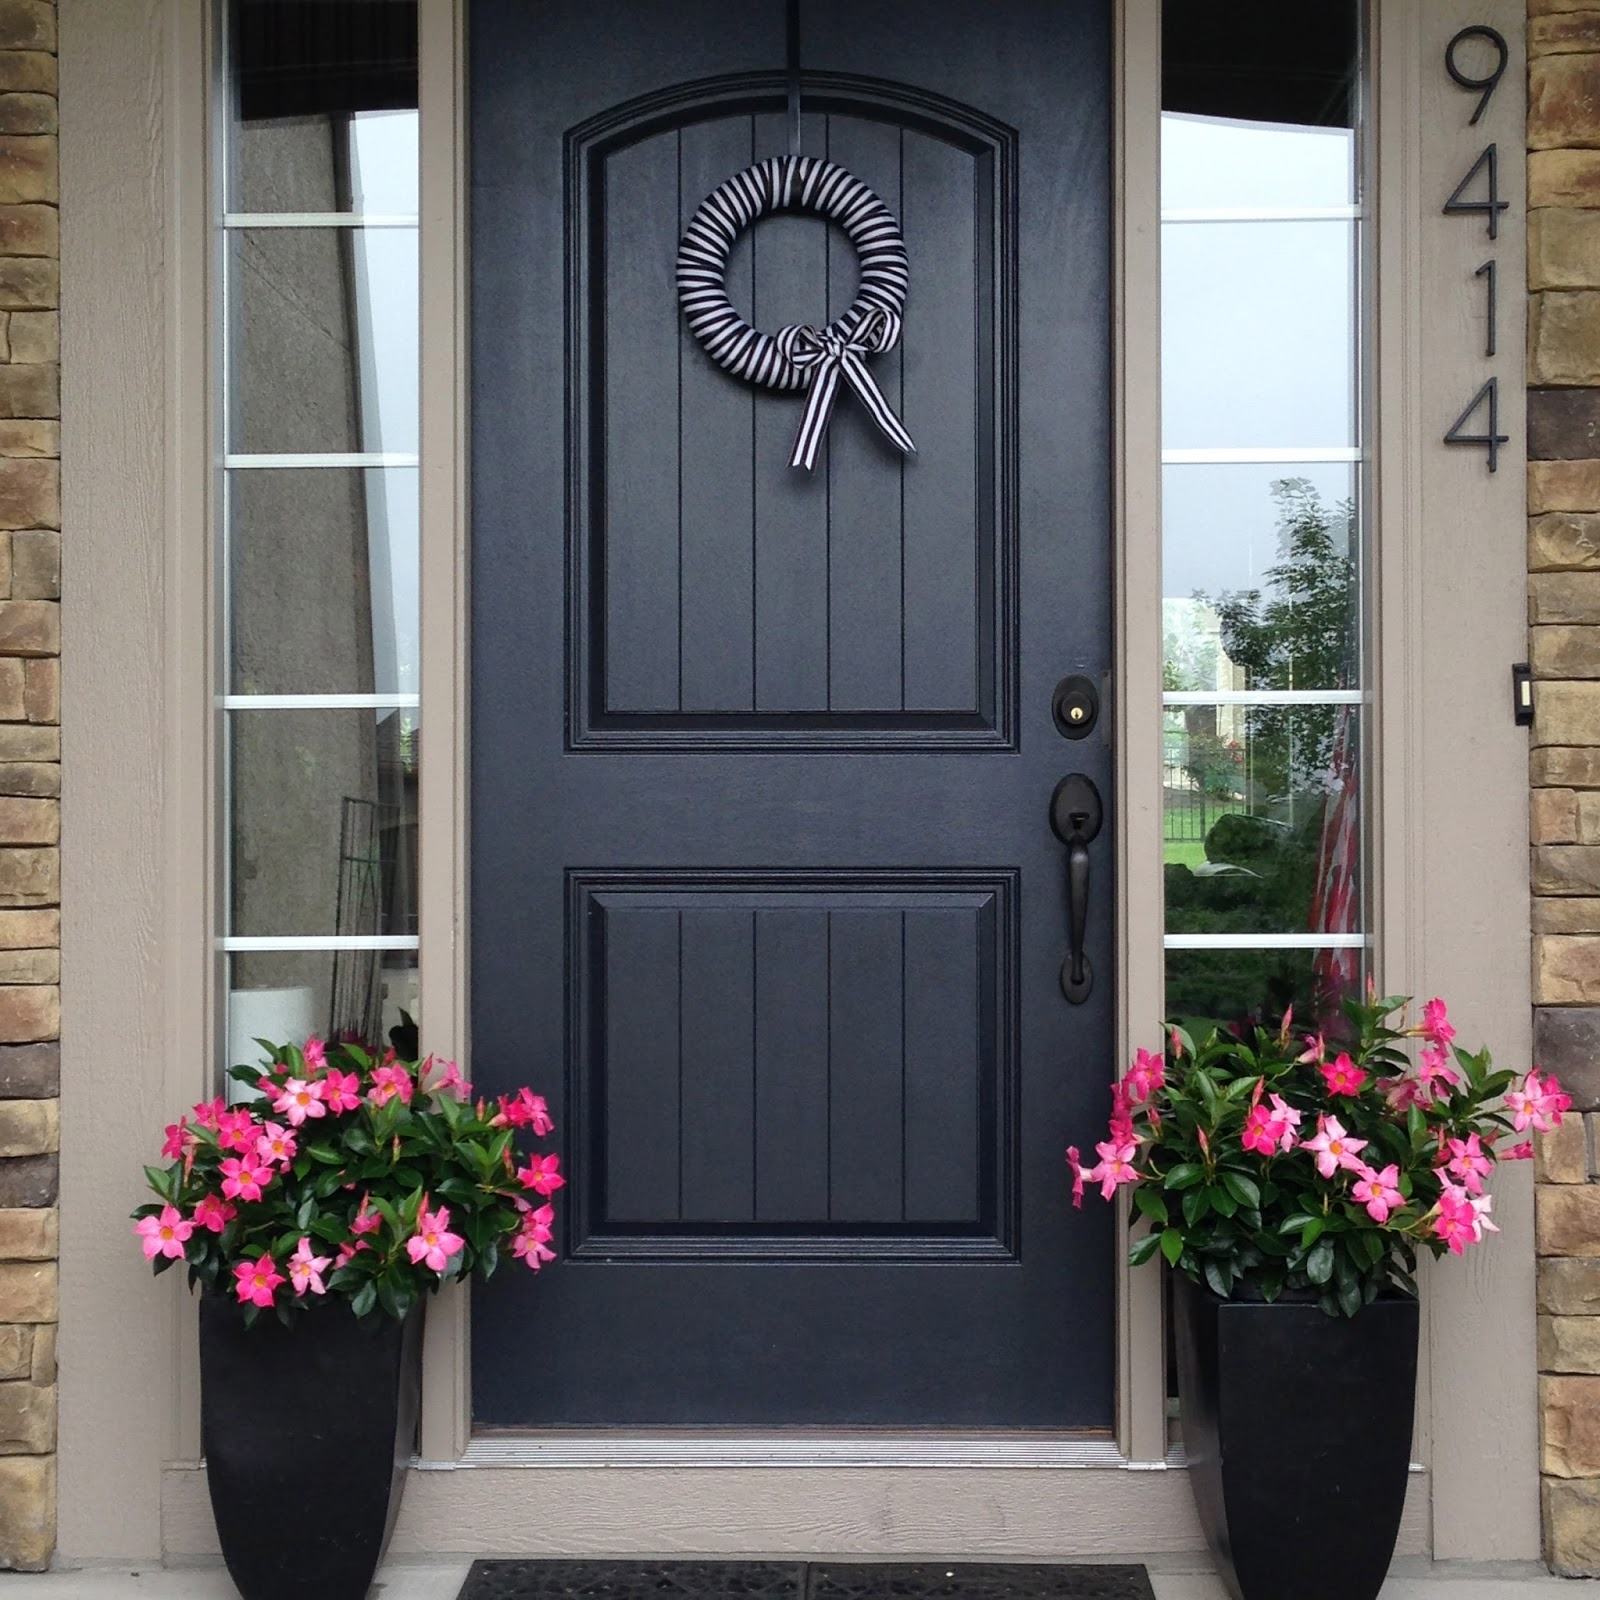 Life love larson front door dreaming for New double front doors